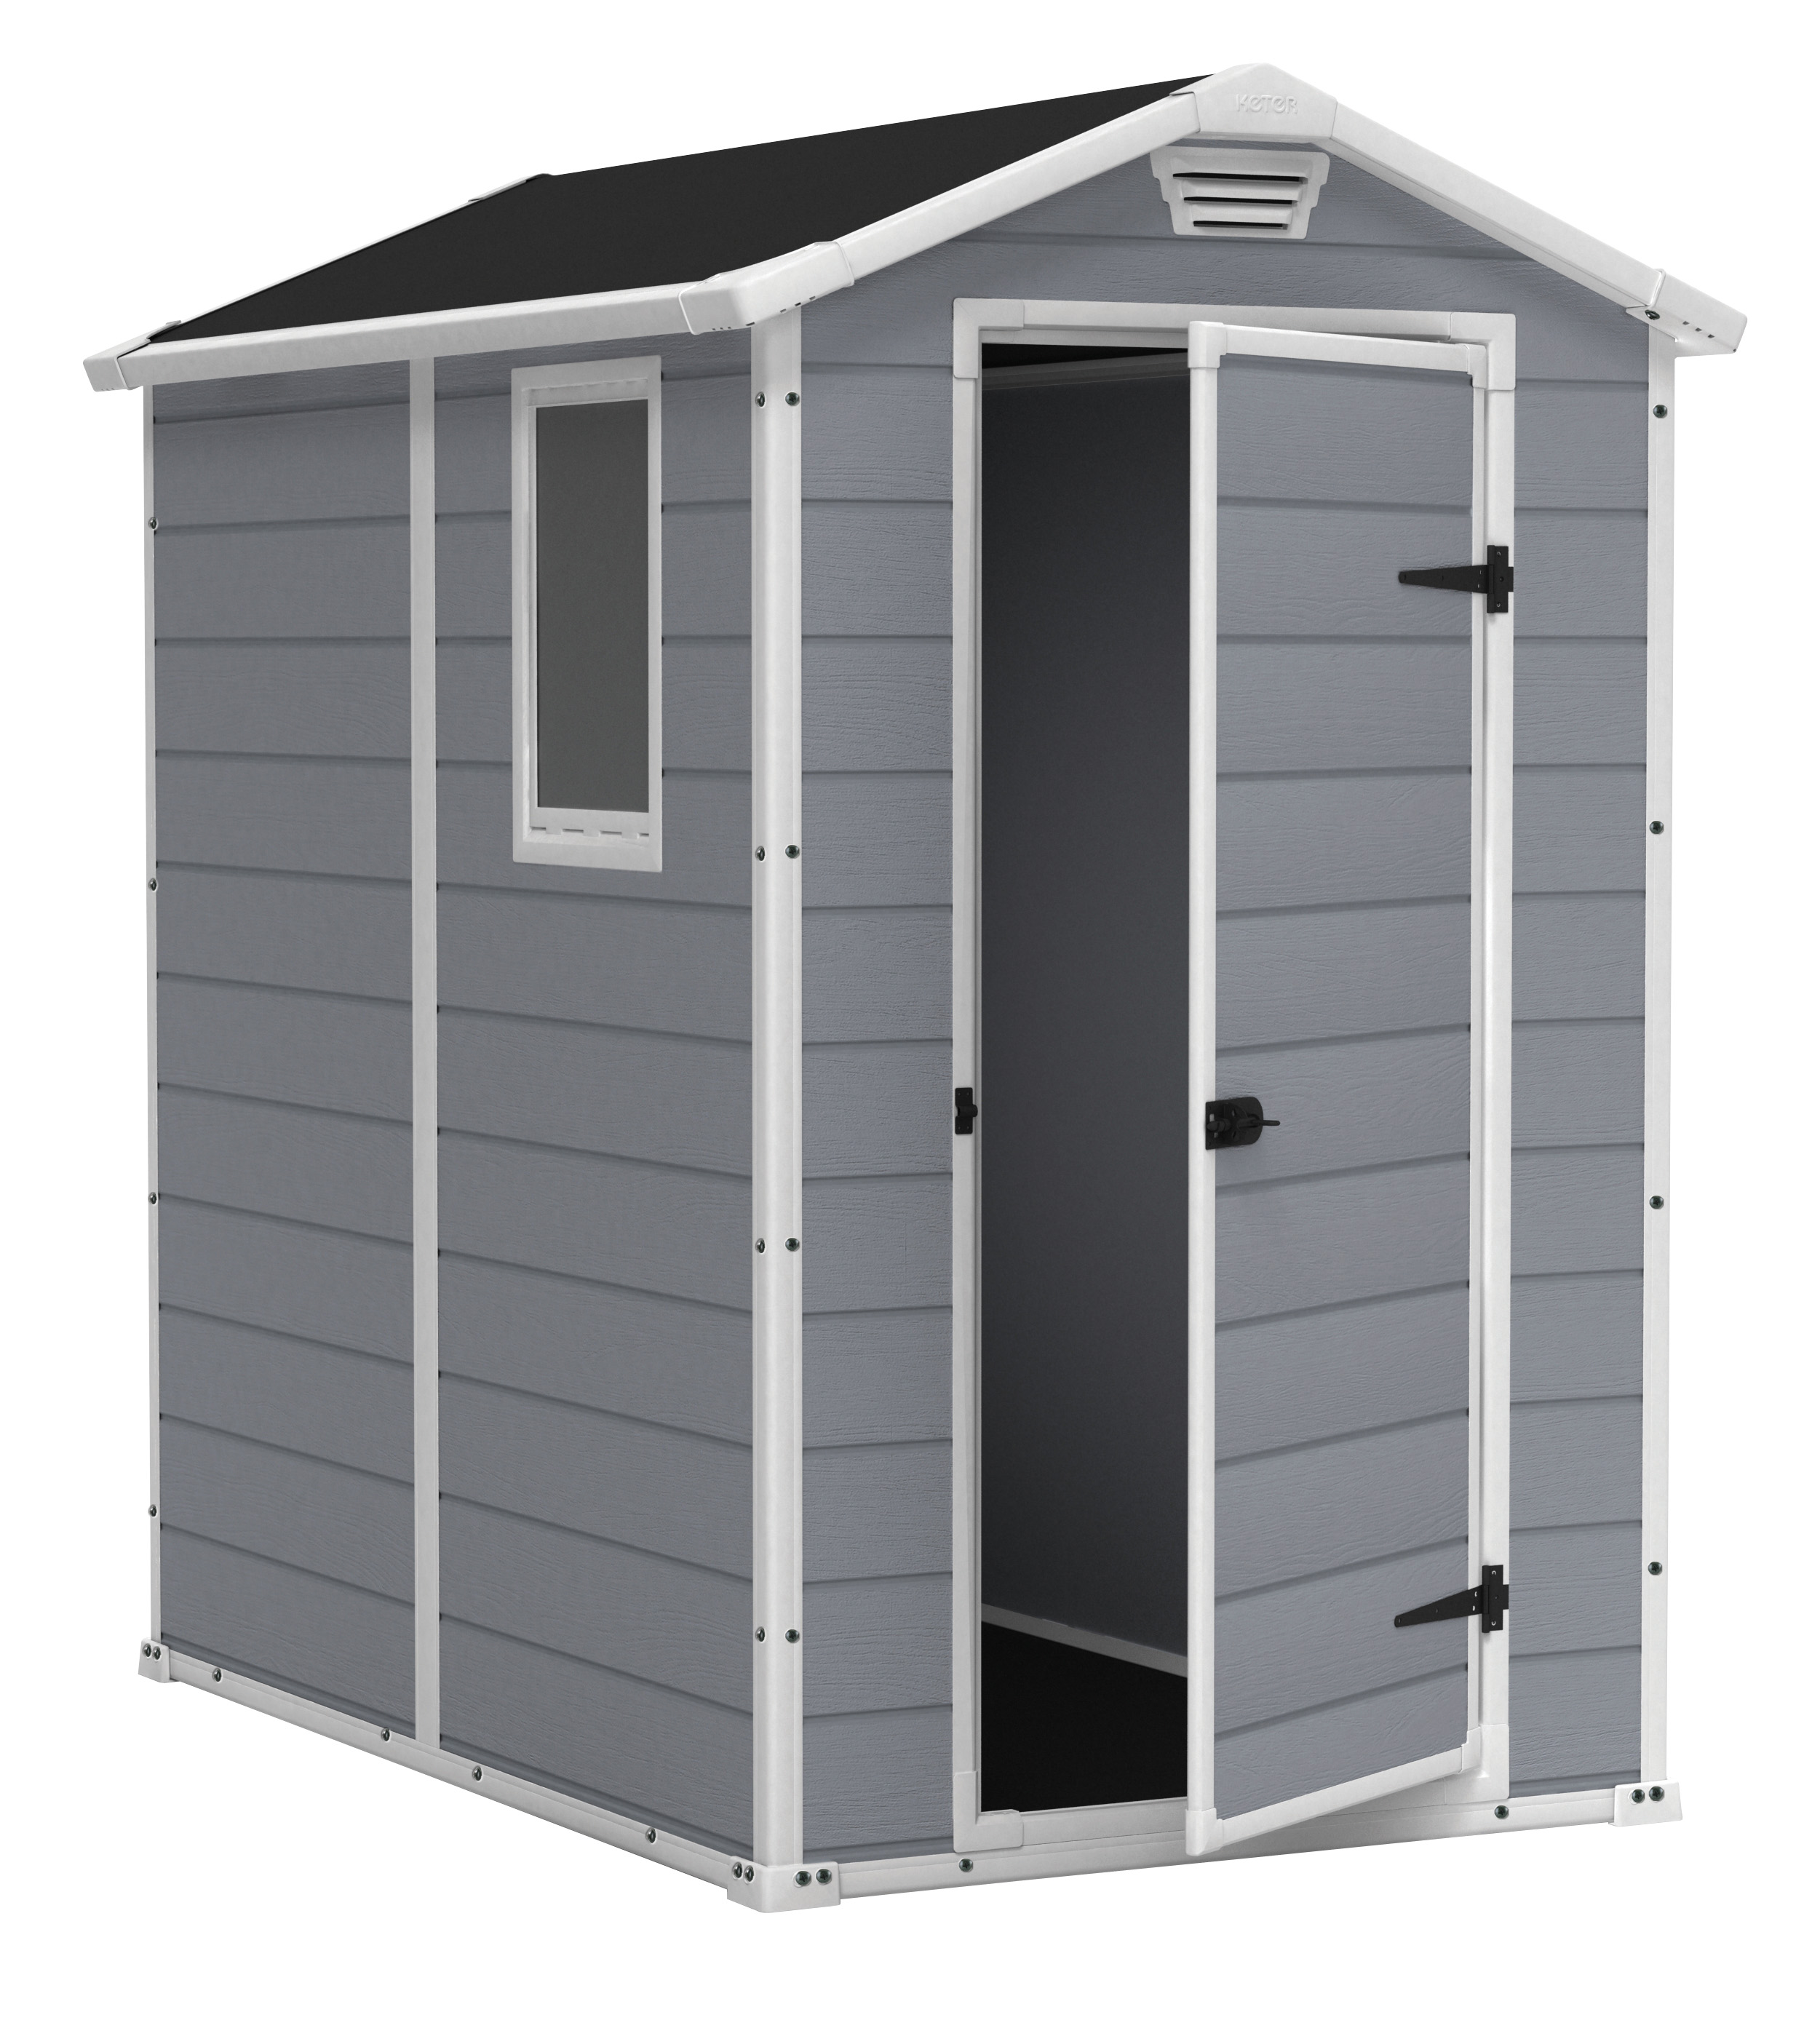 Keter Manor 4u0027 x 6u0027 Resin Storage Shed All-Weather Plastic Outdoor  sc 1 st  Walmart & Storage Sheds under $400